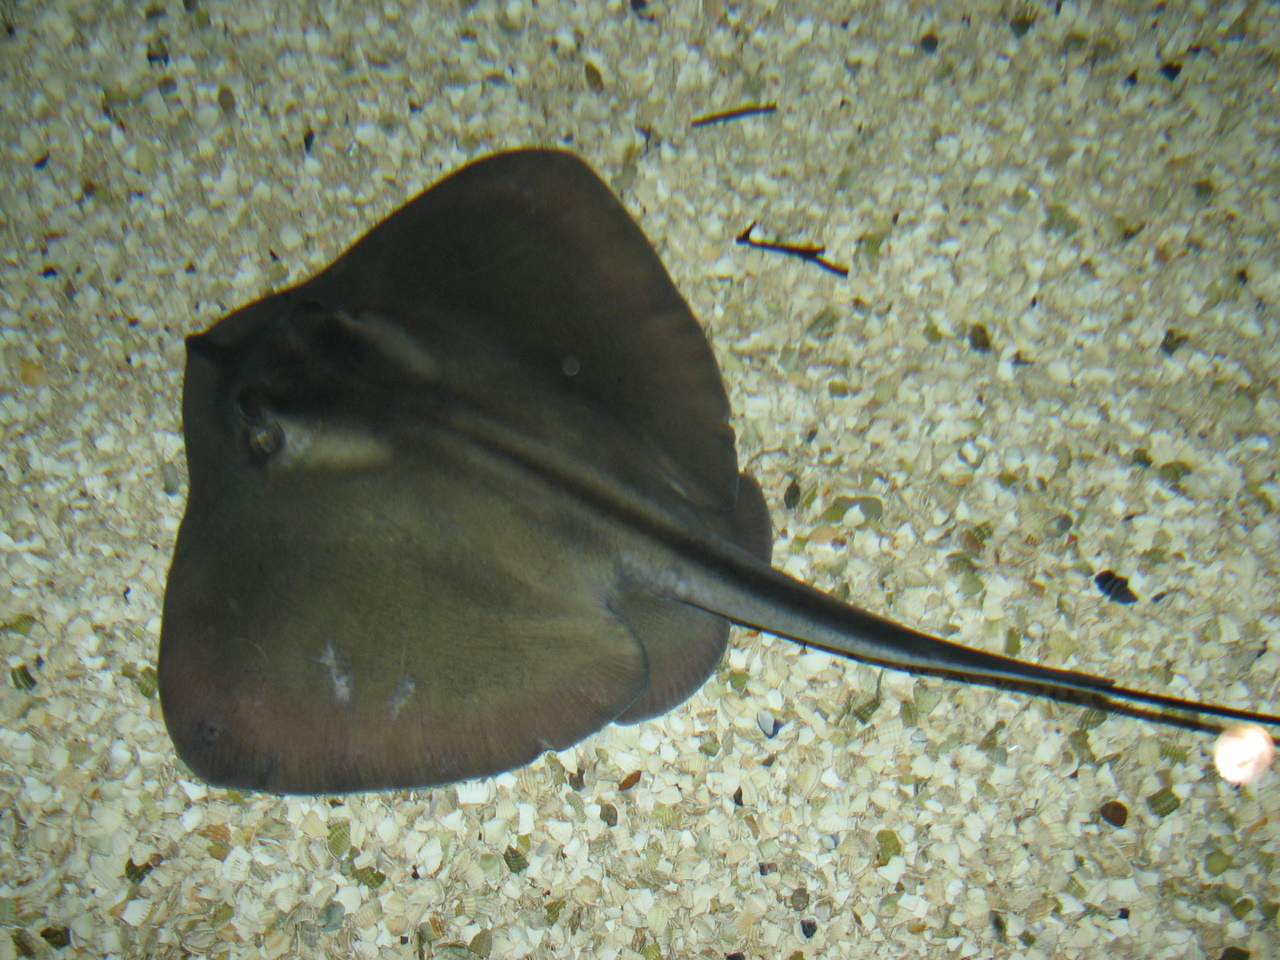 Dasyatis wikipedia for Is a stingray a fish